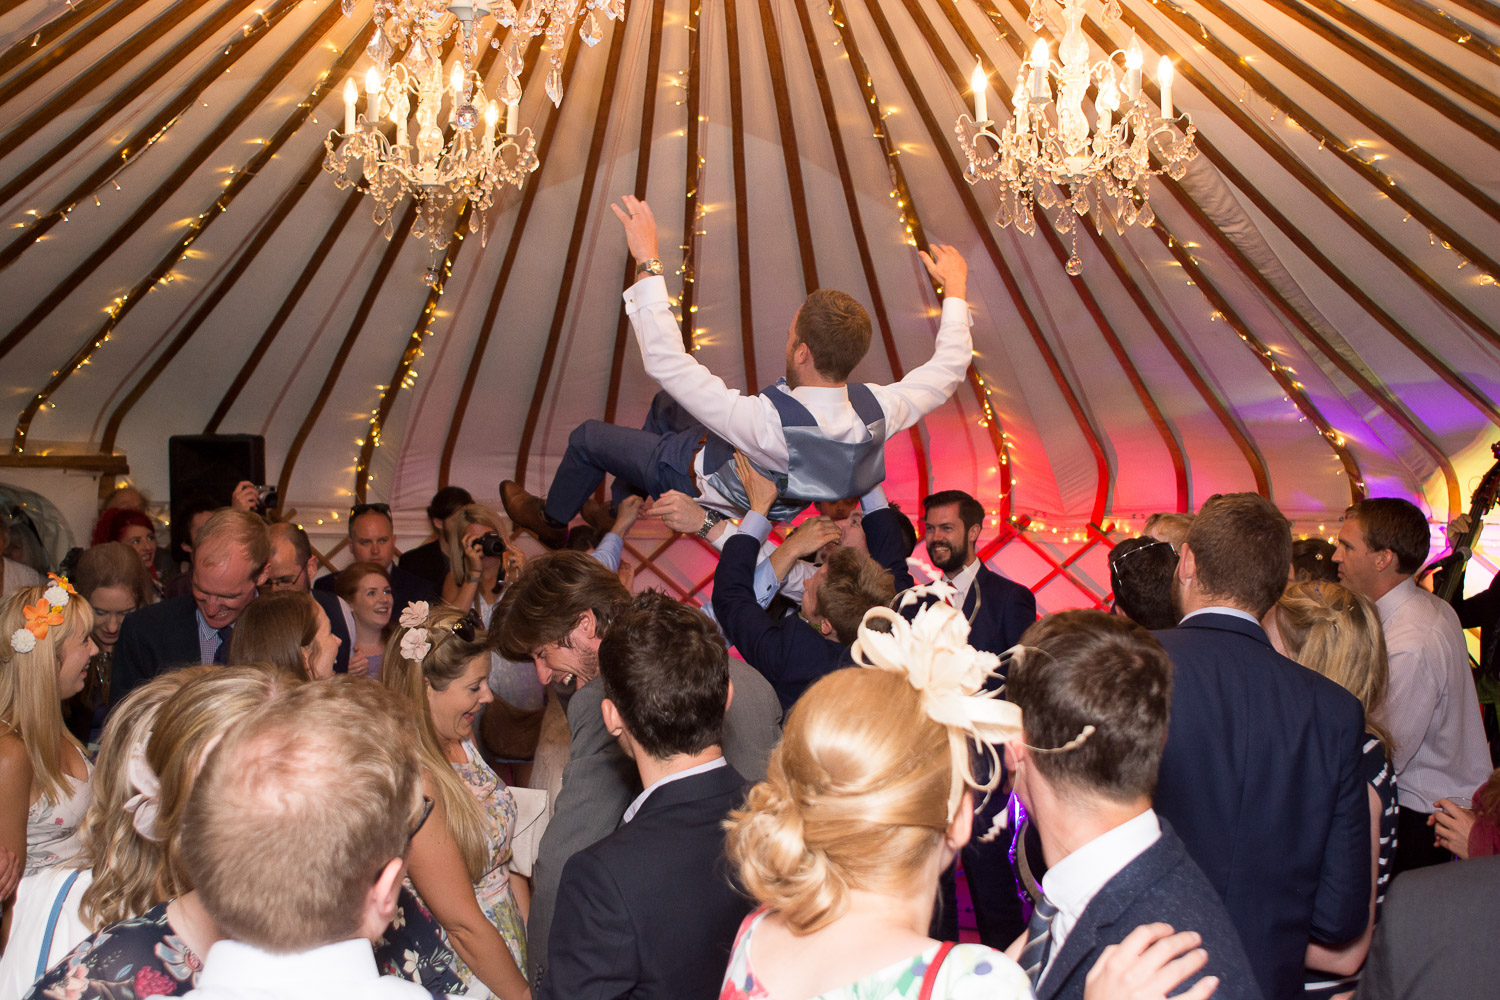 groom crowd surfing at wedding yurts wedding in leicestershire